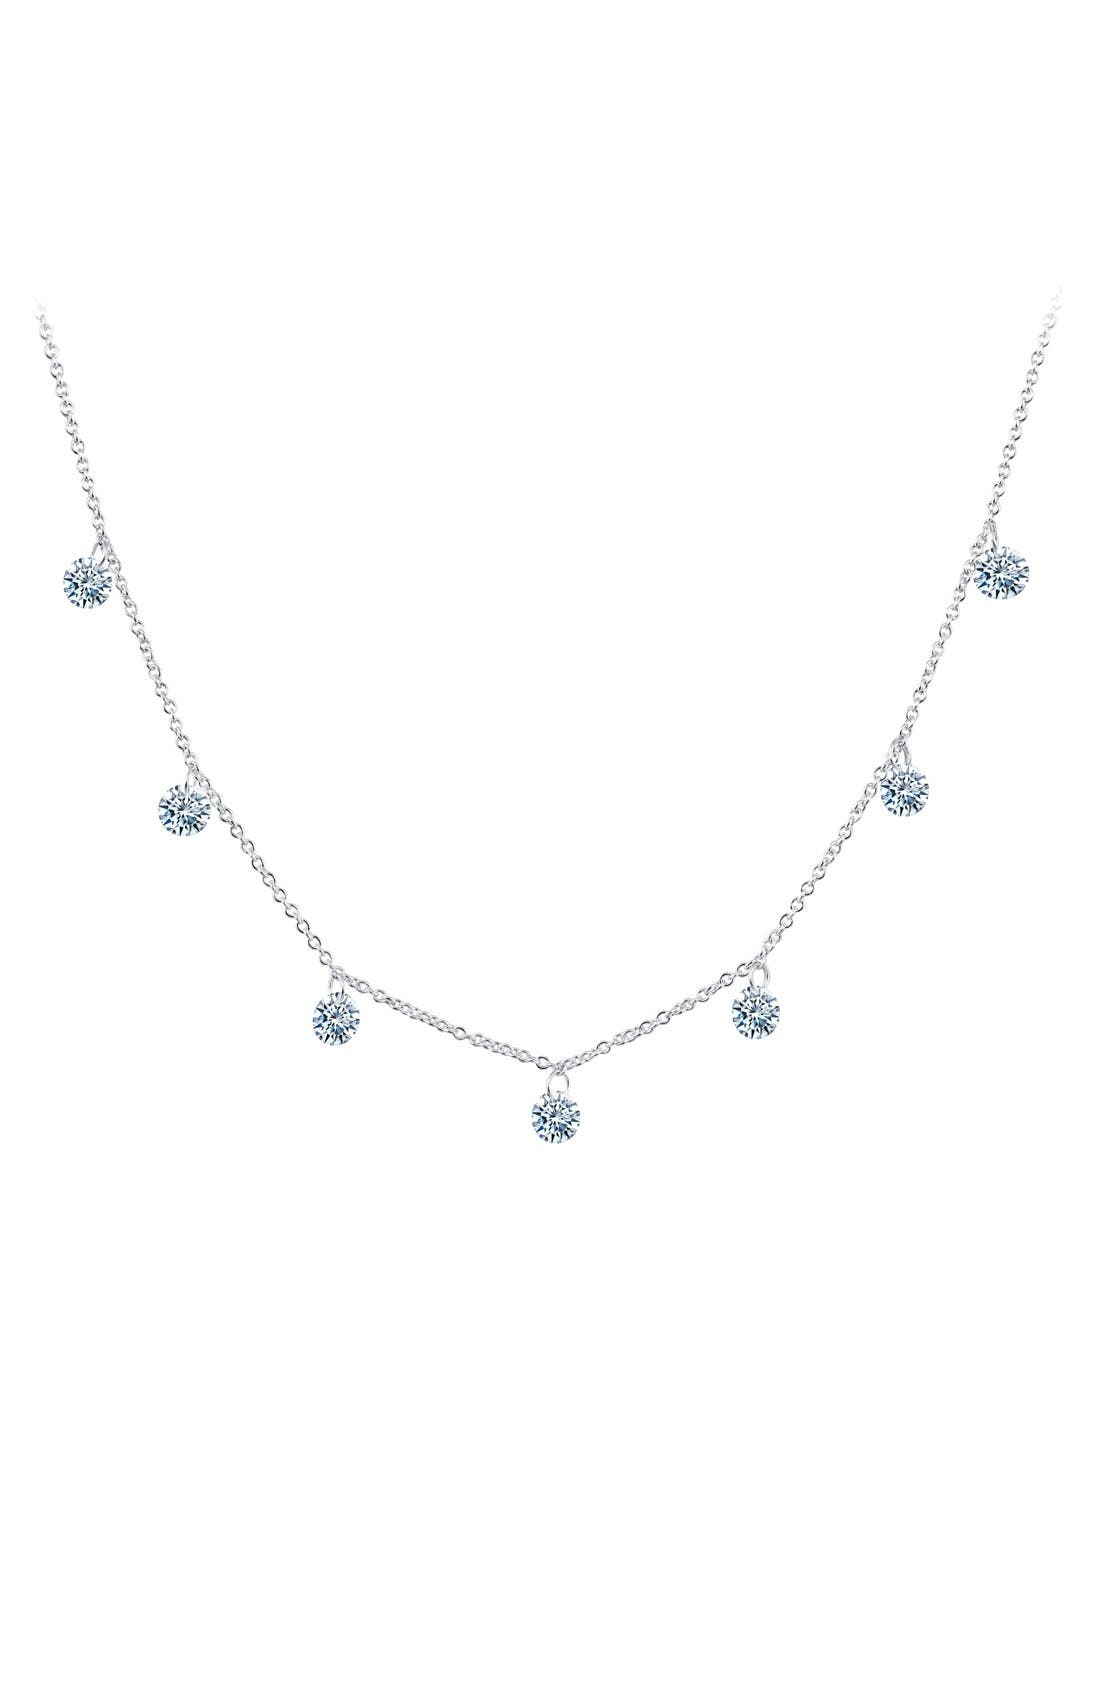 Lassaire In Motion Frameless Raindrop Necklace,                         Main,                         color, Silver